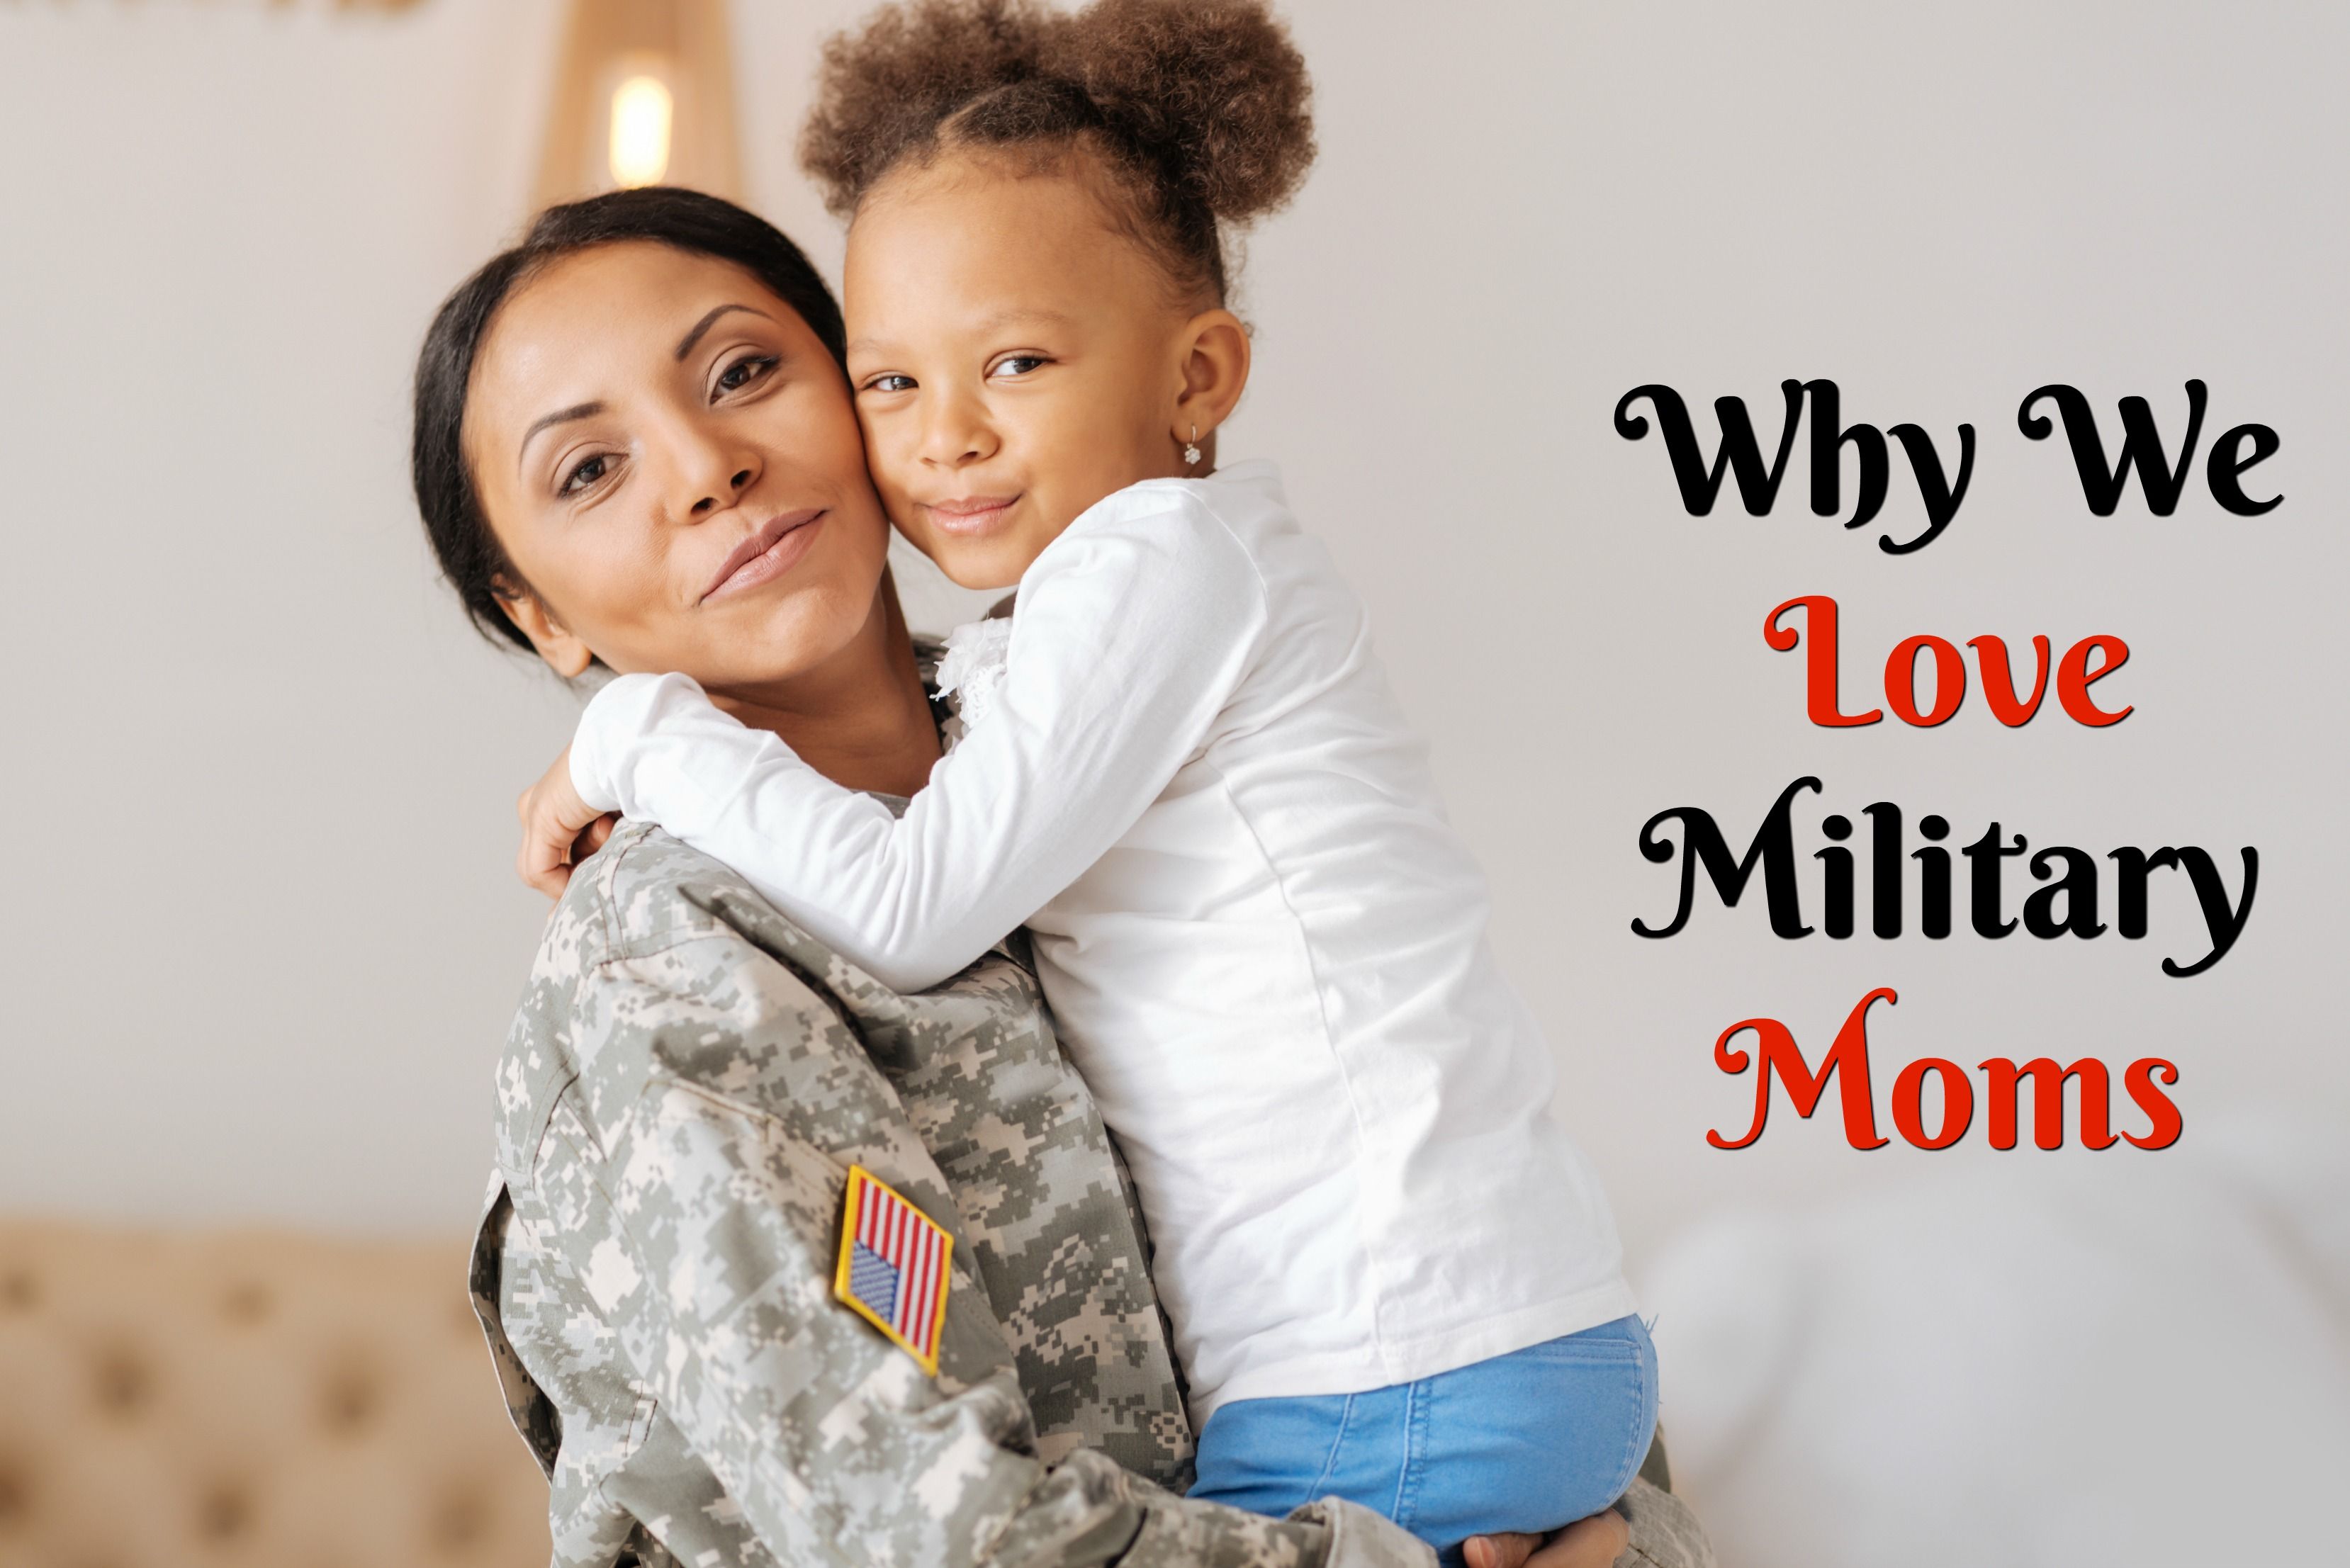 Why We Love Military Moms